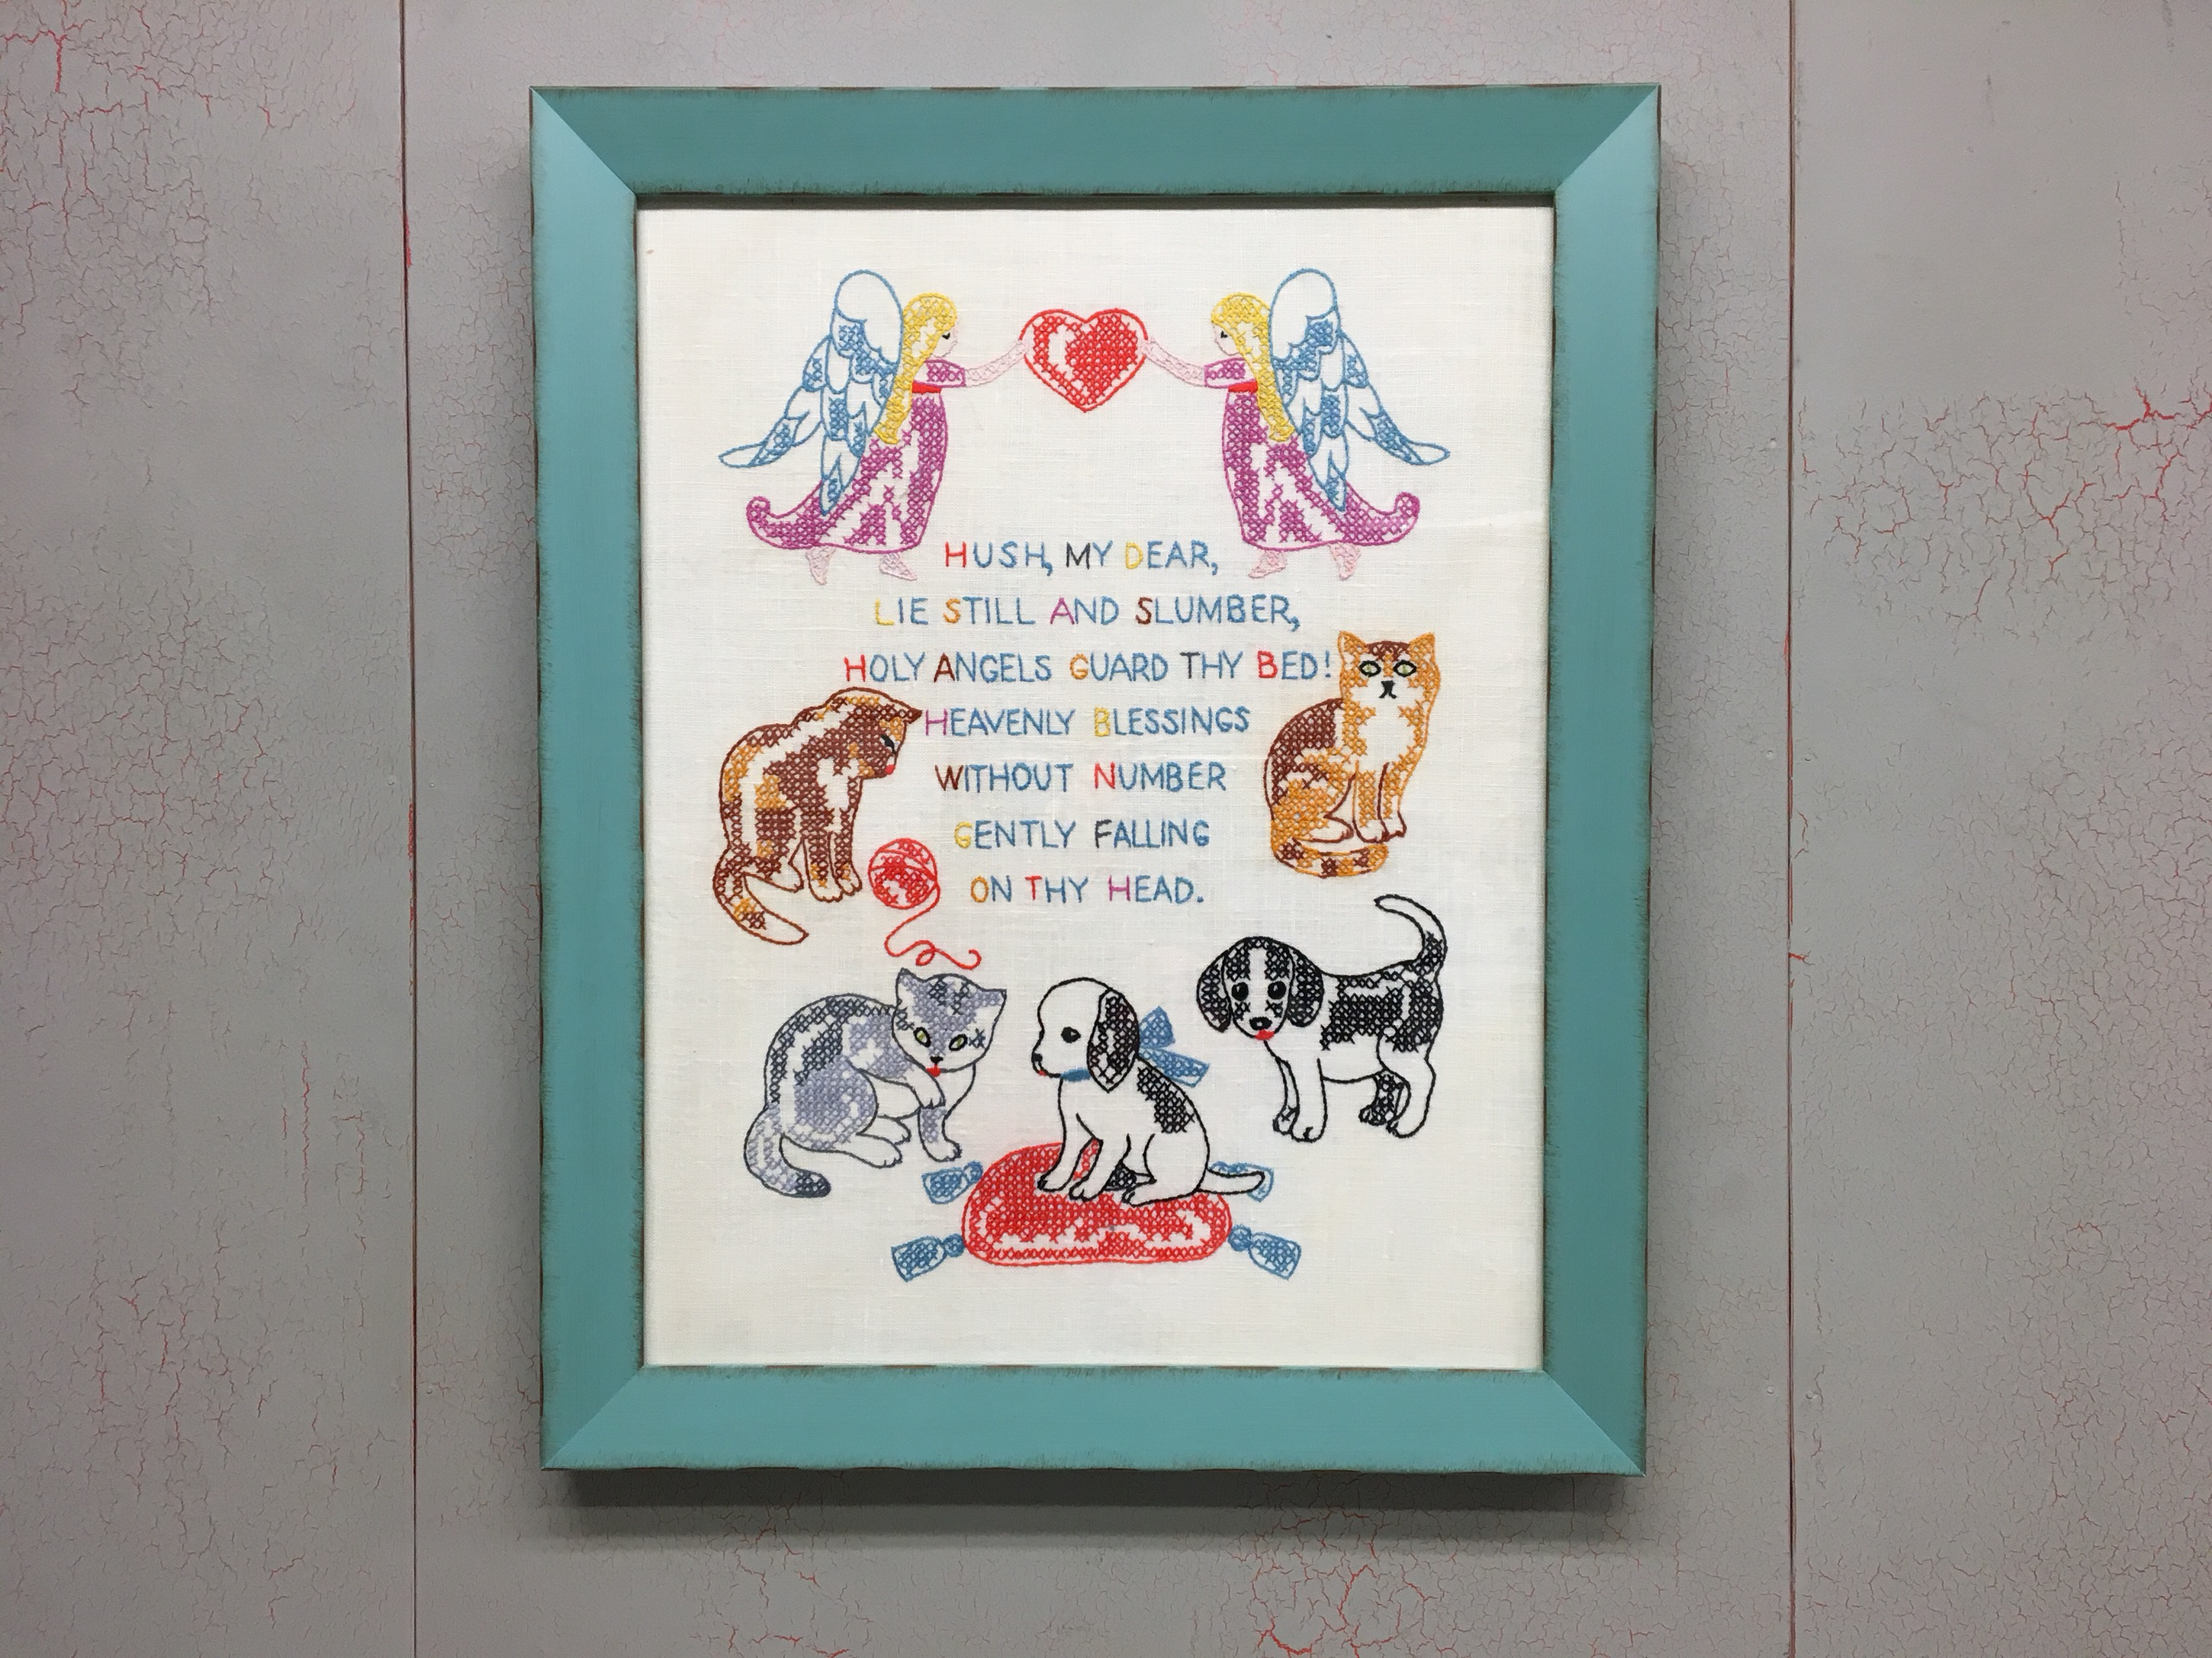 Precious Cross Stitch/Embroidery Nursery Rhyme in a Rustic Max Moulding - Archivally Stretched, of Course